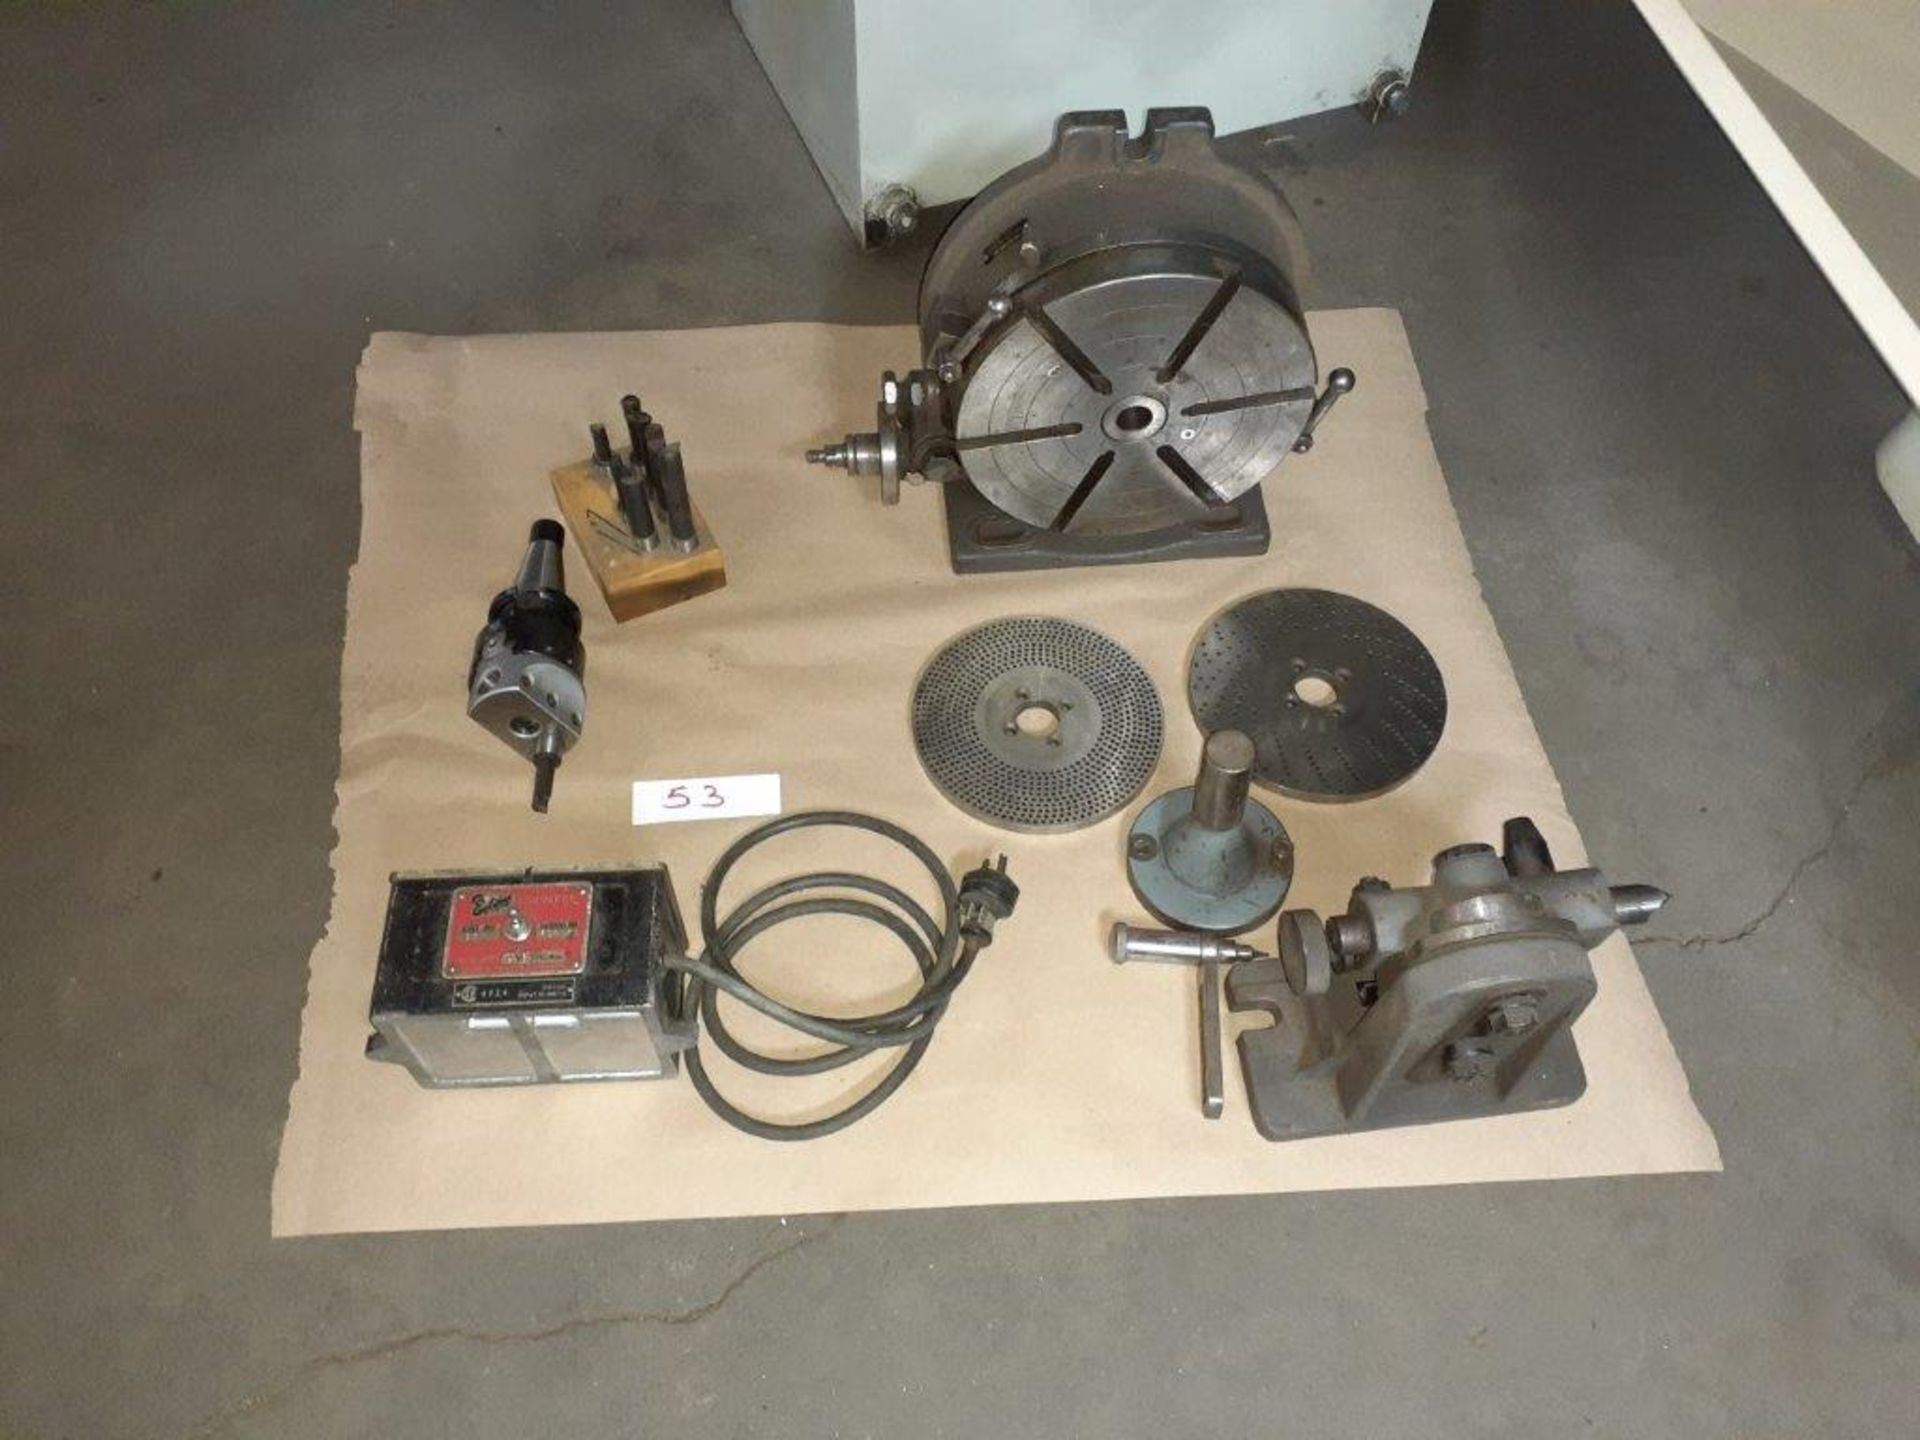 LOT: Assorted Milling Machine Accessories: Dividing Head, Boring Head, (8) Milling Knives,